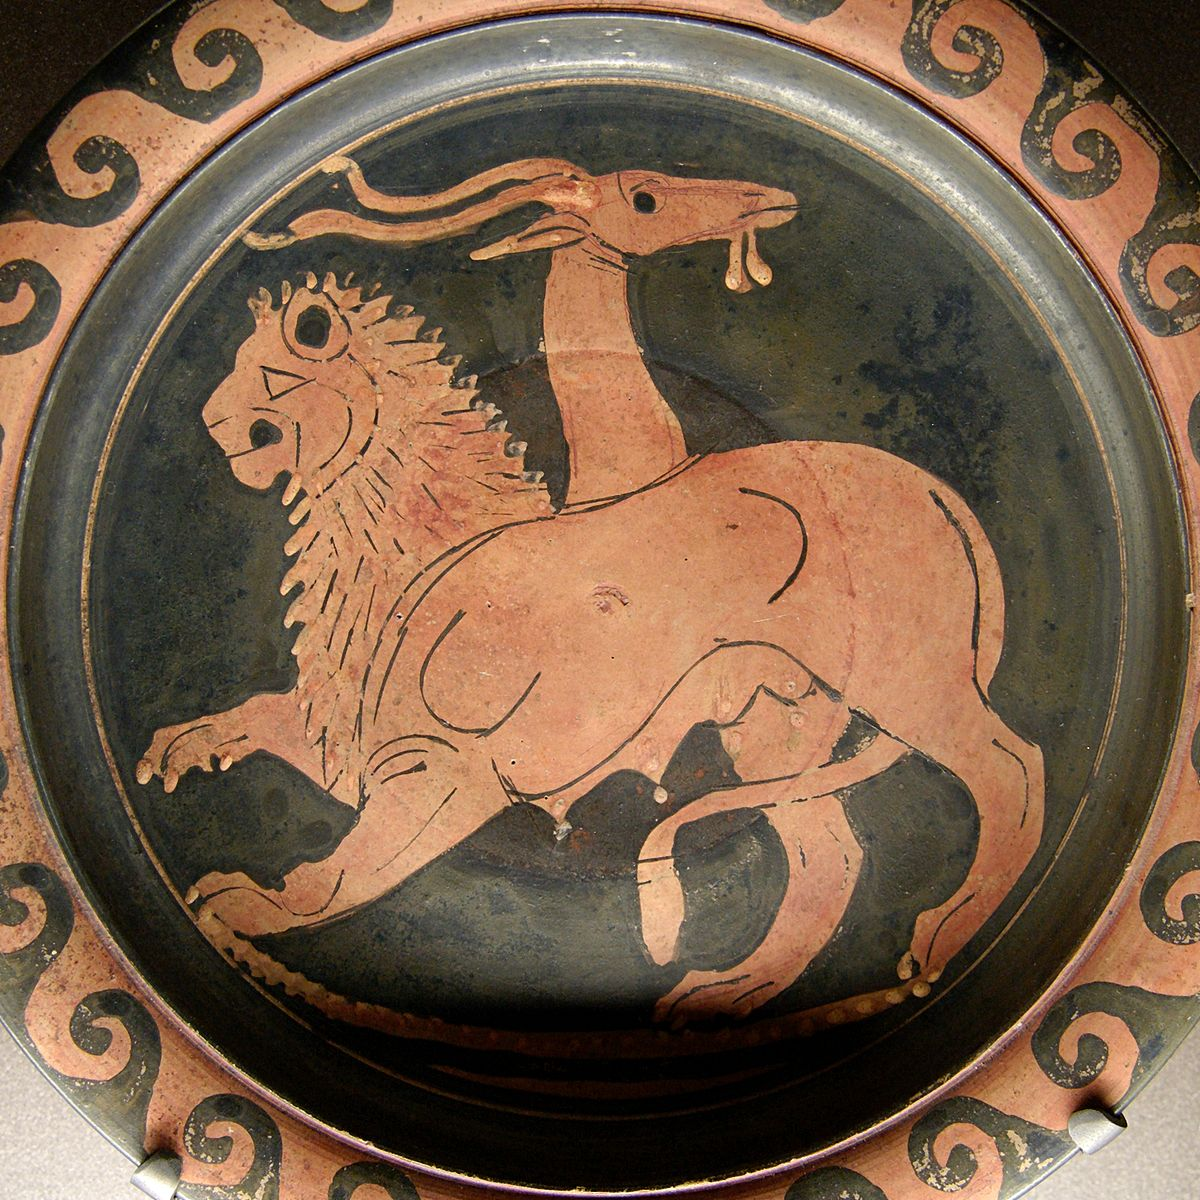 Chimera (mythology) - Wikipedia